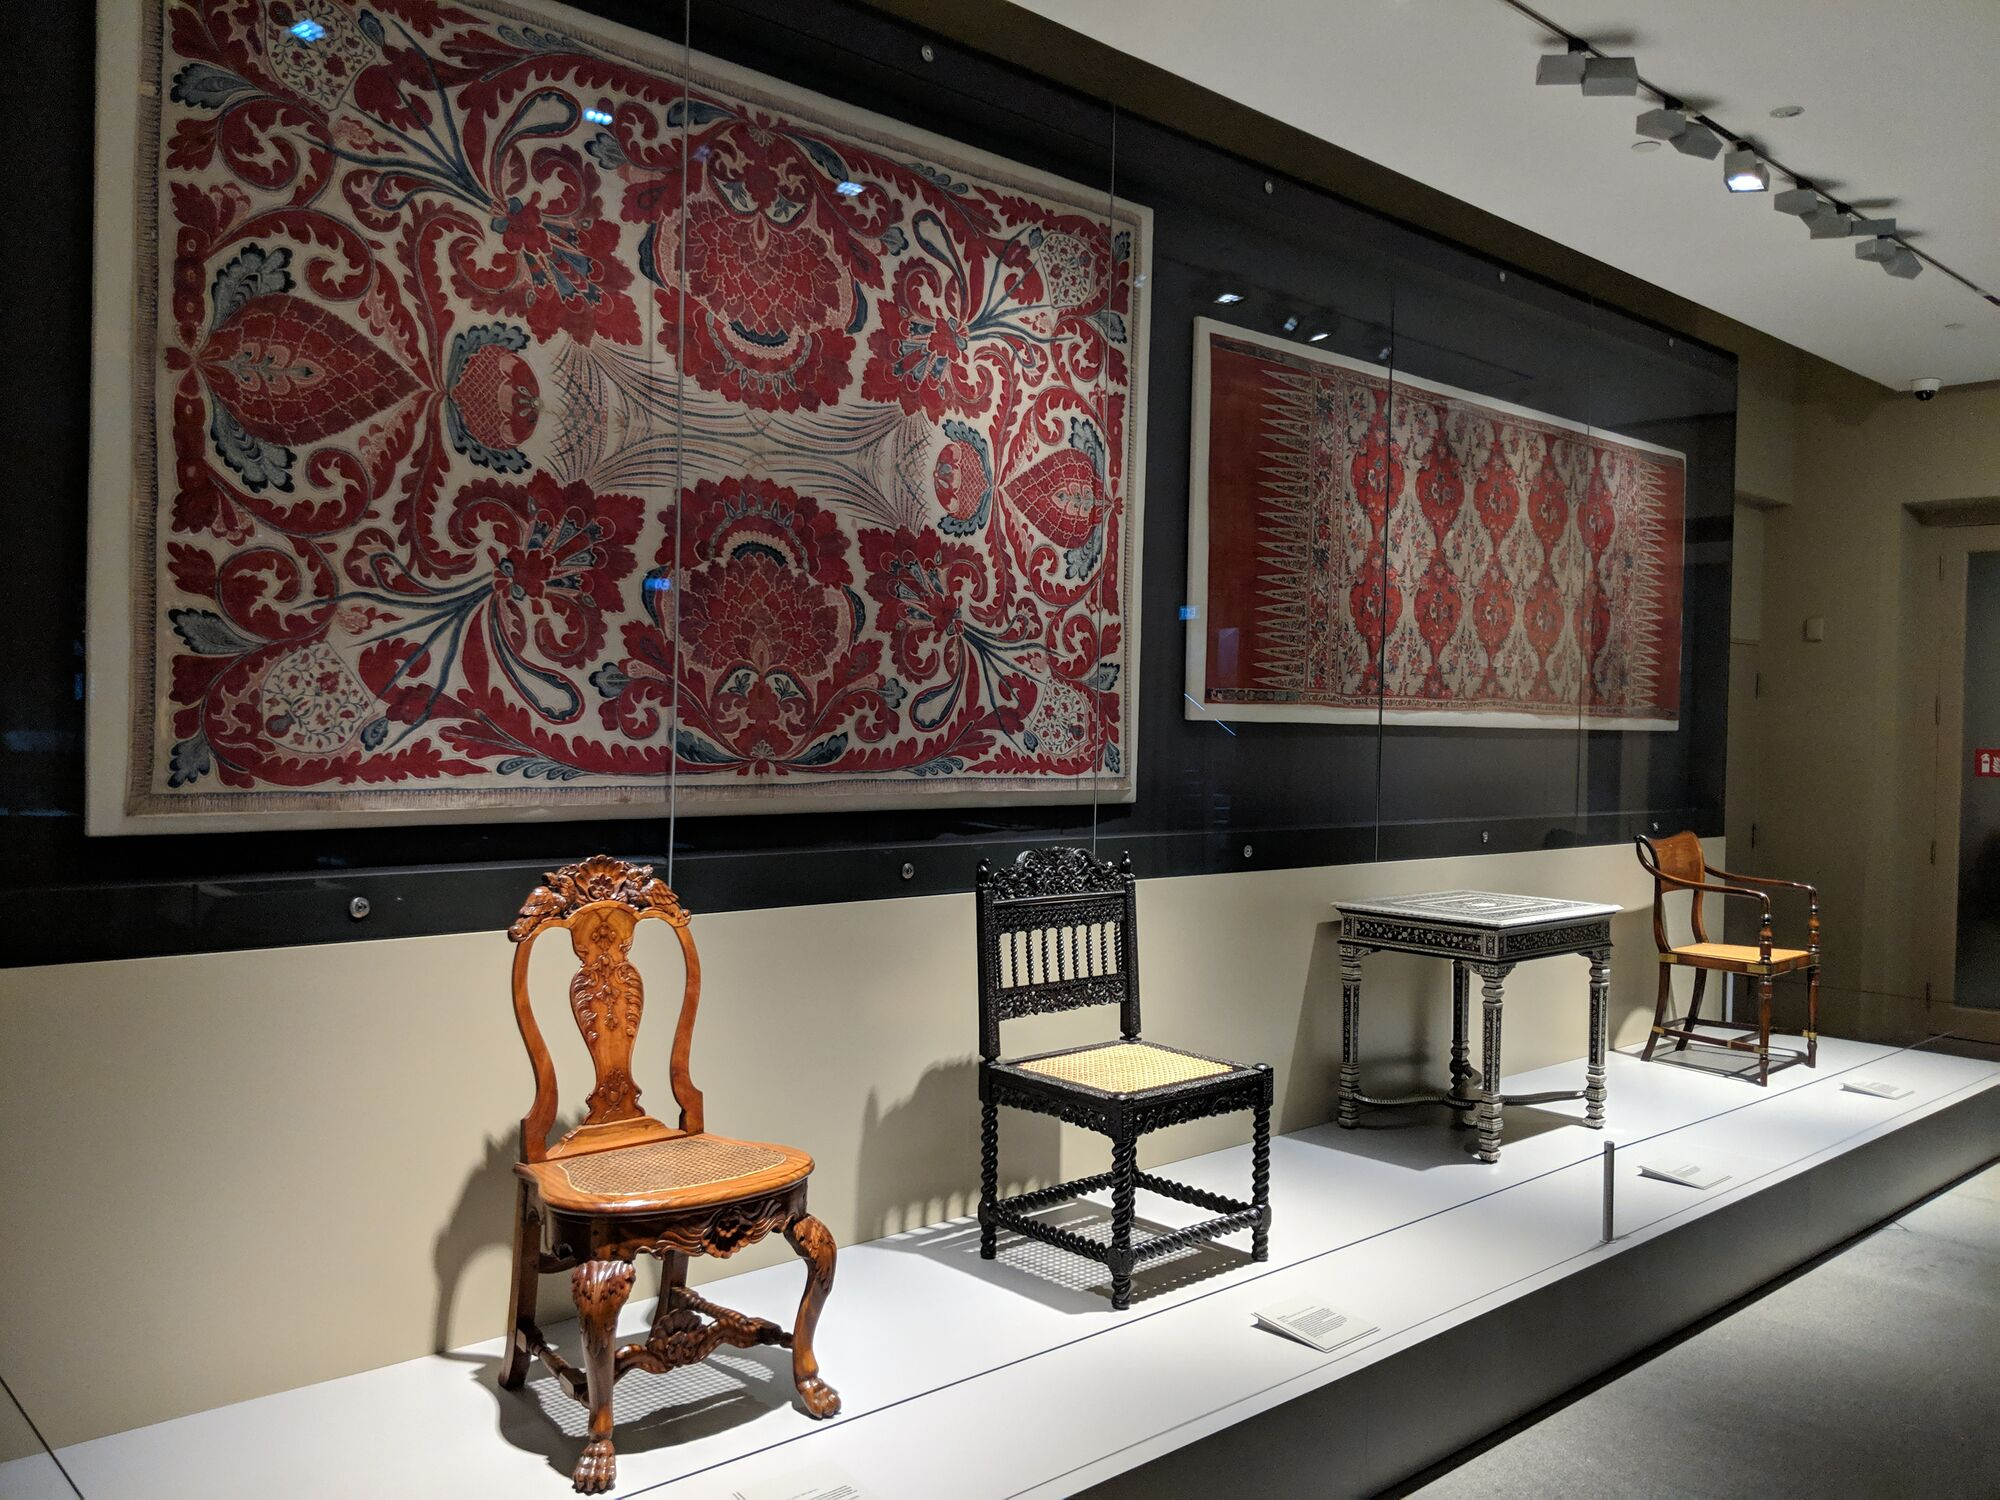 1) Raffles chair, Java or Kolkata around 1810s. 2) Table, India, Vizagapatam, intricately inlaid with ivory. 3) Side chair, India, Coromandel Coast, late 17th century, Ebony wood. 4) Cotton Textiles - Hanging with the tree of life, 17th or 18th century.